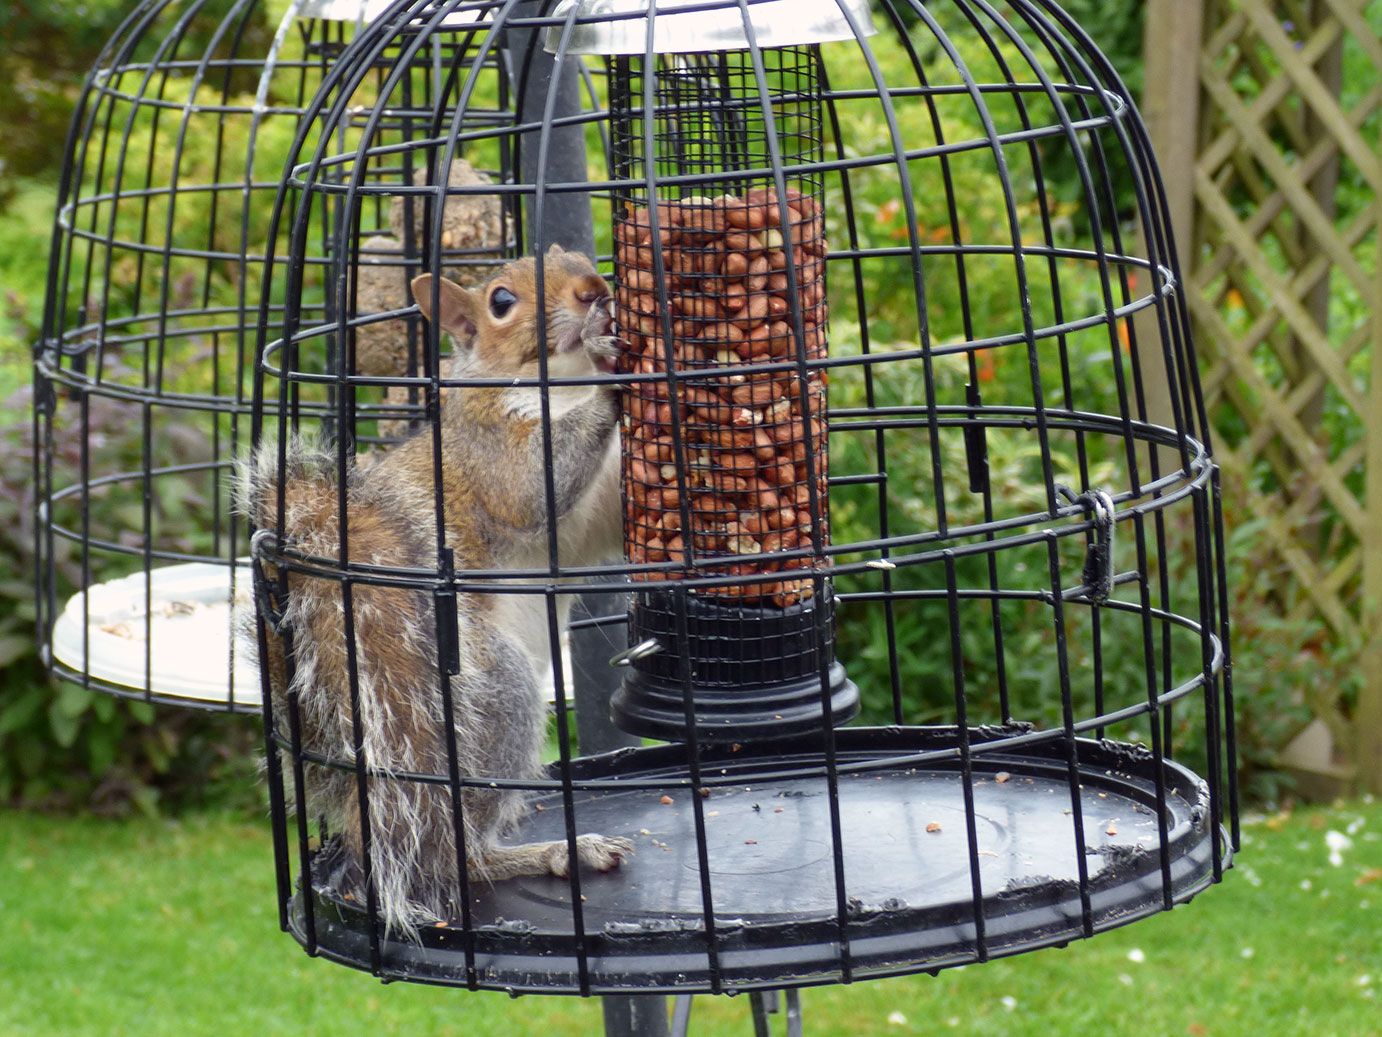 The juvenile squirrel had become temporarily trapped after squeezing through the bars of a squirrel-proof feeder!